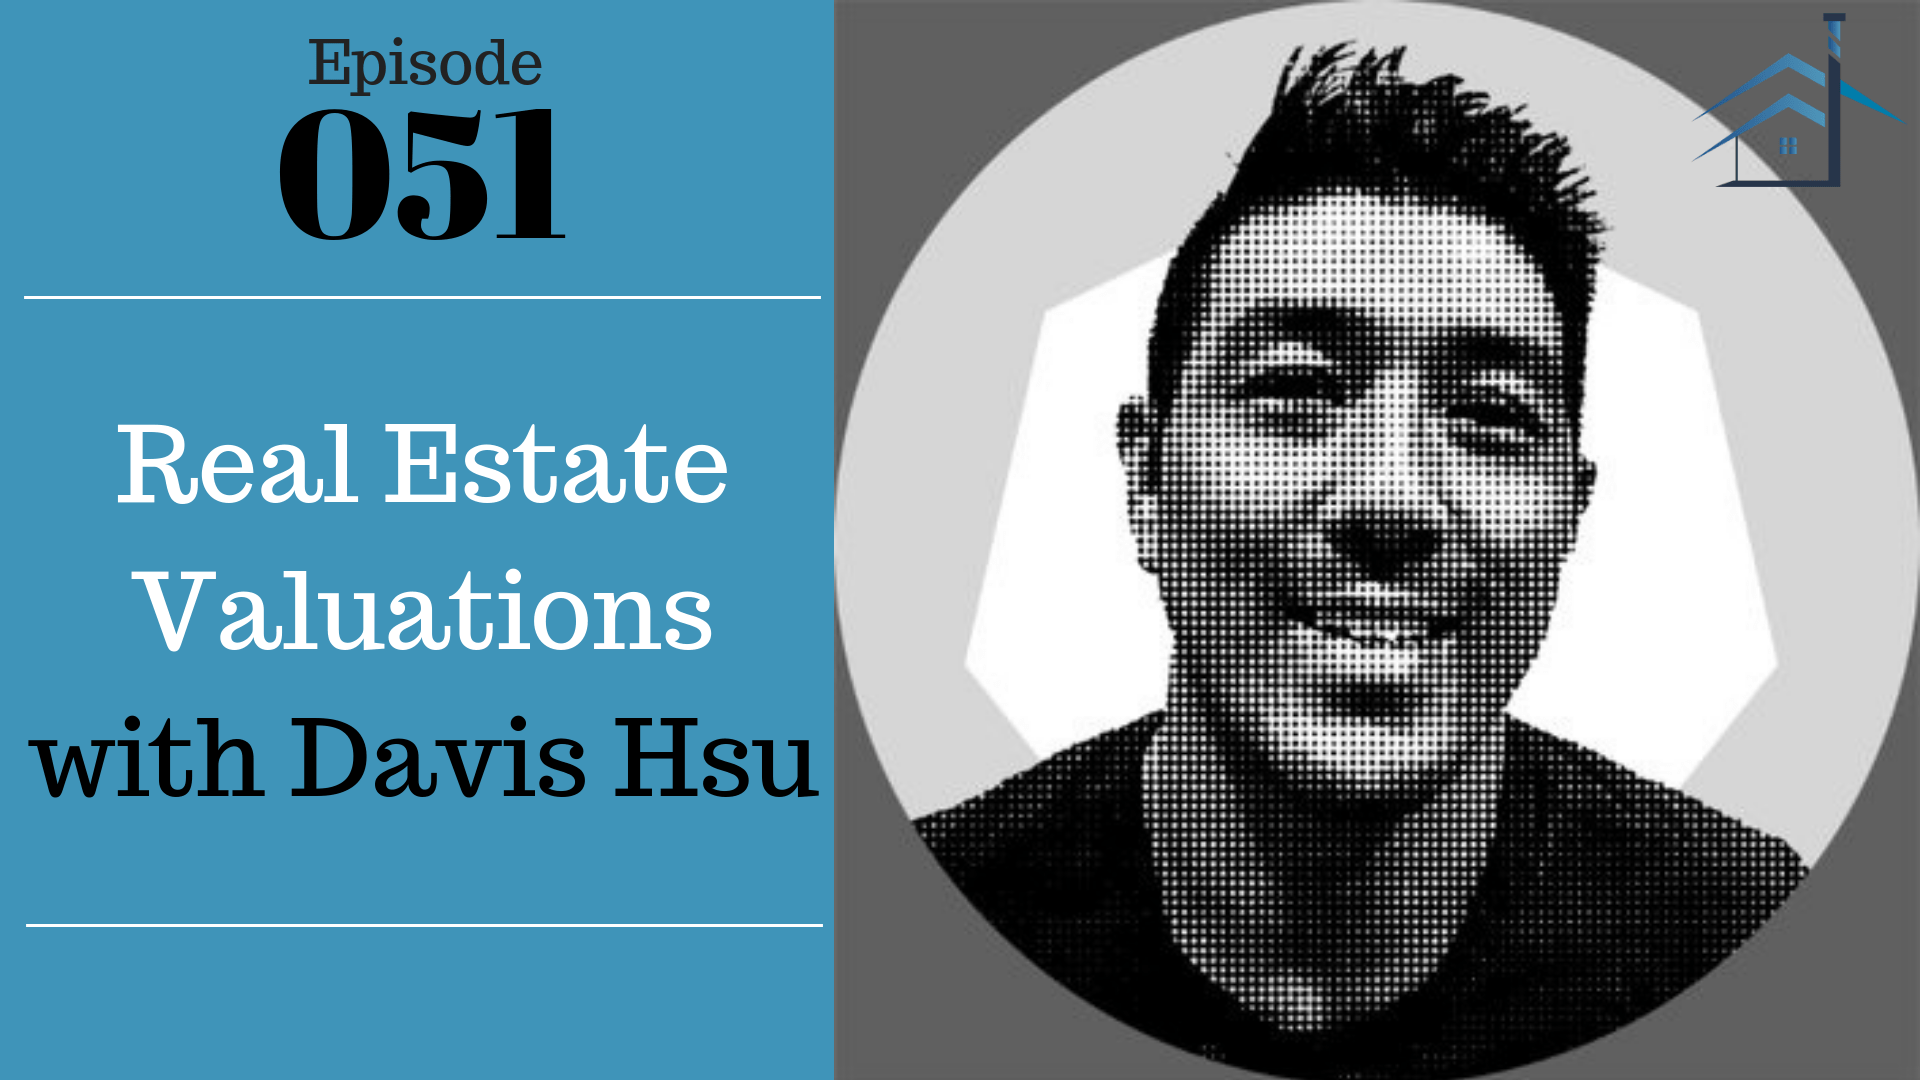 SIC 051: Real Estate Valuations Davis Hsu with Julie Clark and Joe Bauer